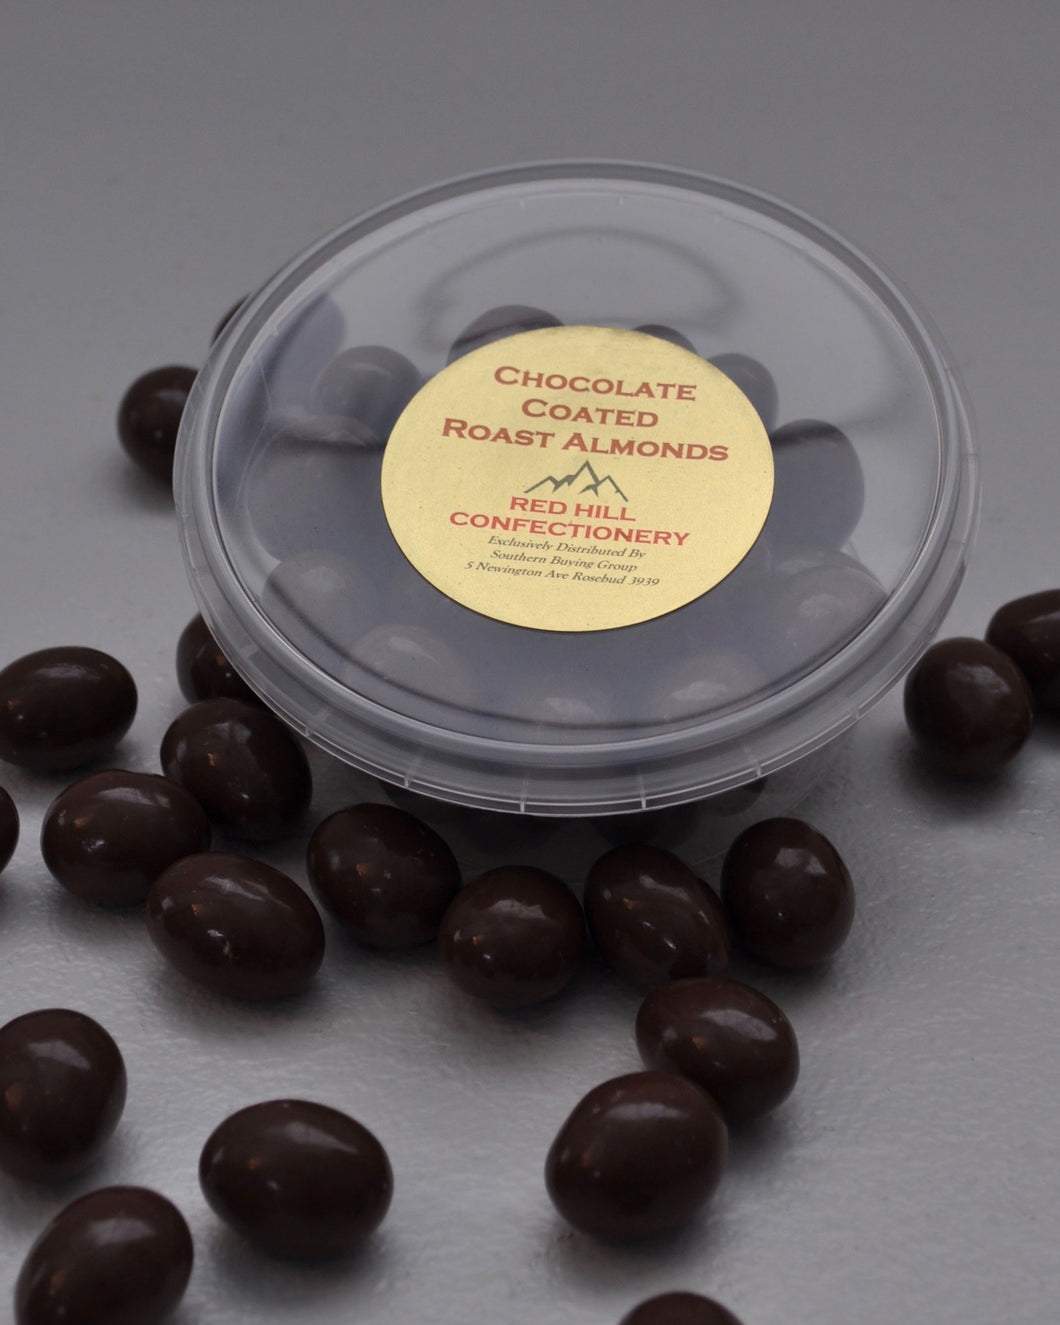 Red Hill Confectionery - Milk Chocolate Coated Almonds 200g Tub